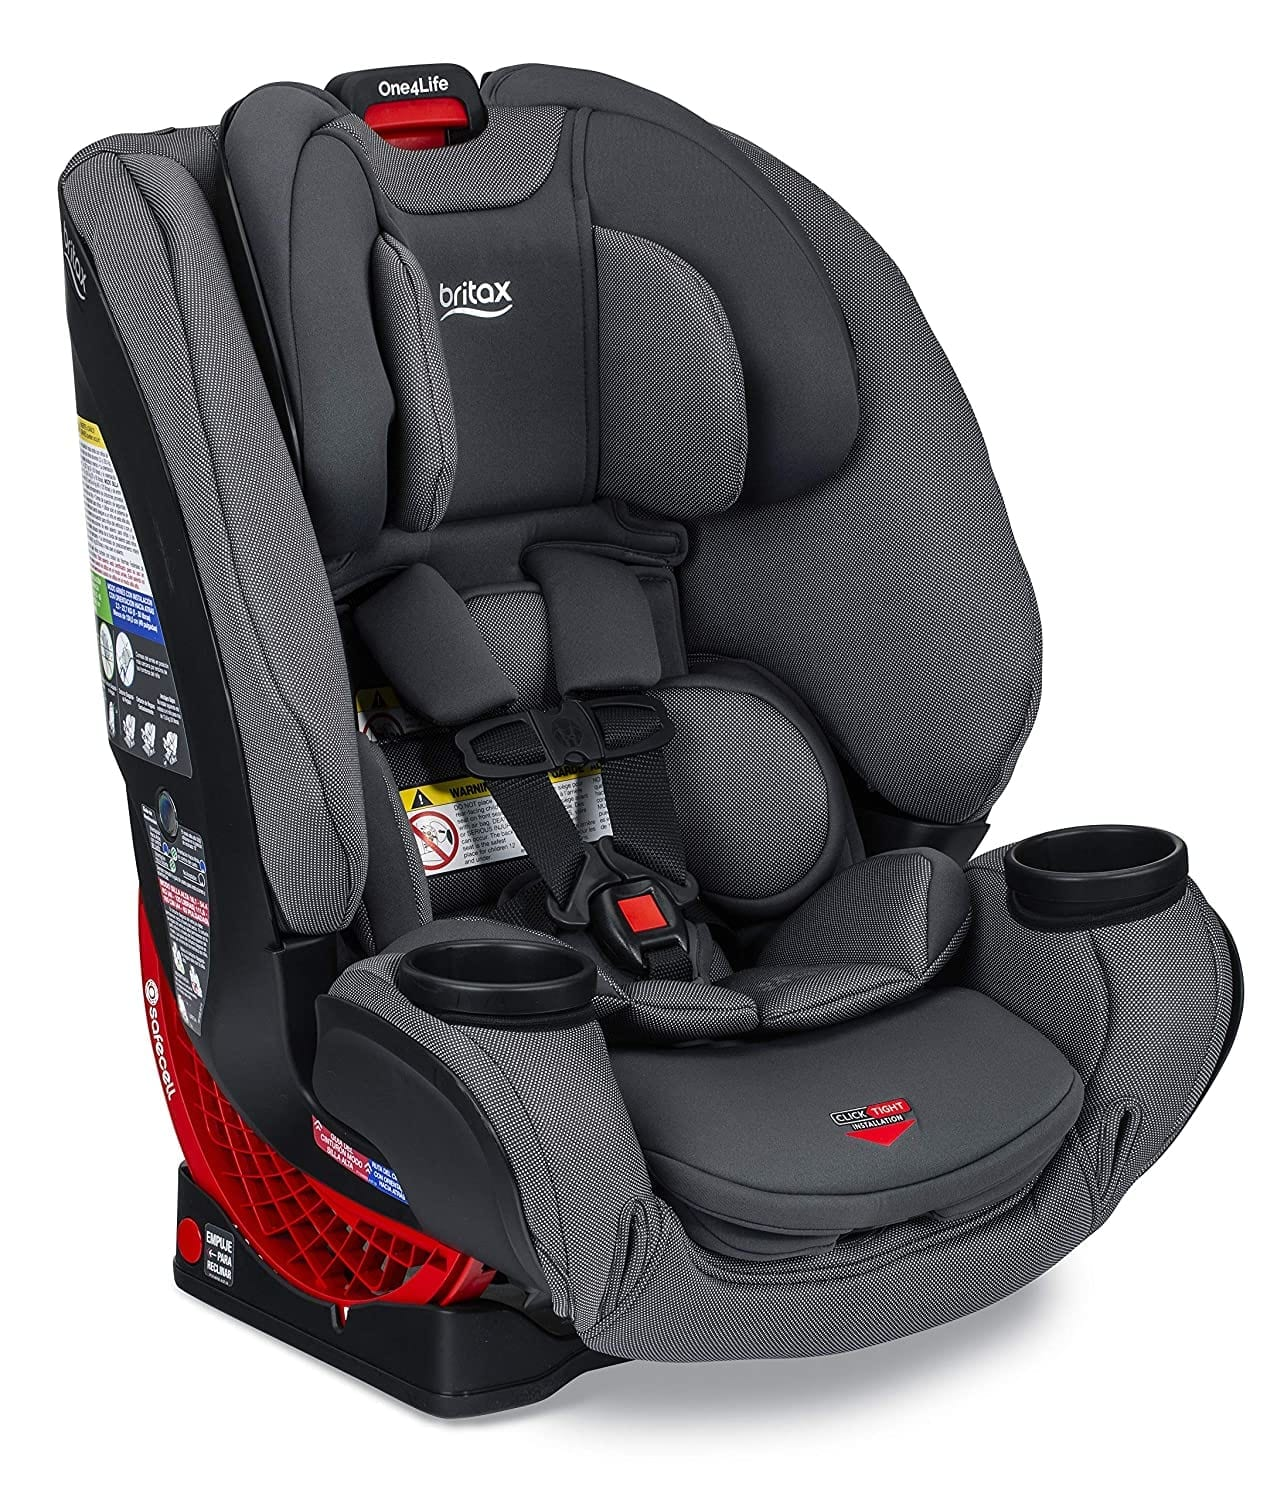 britax all in one one4life convertible car seat